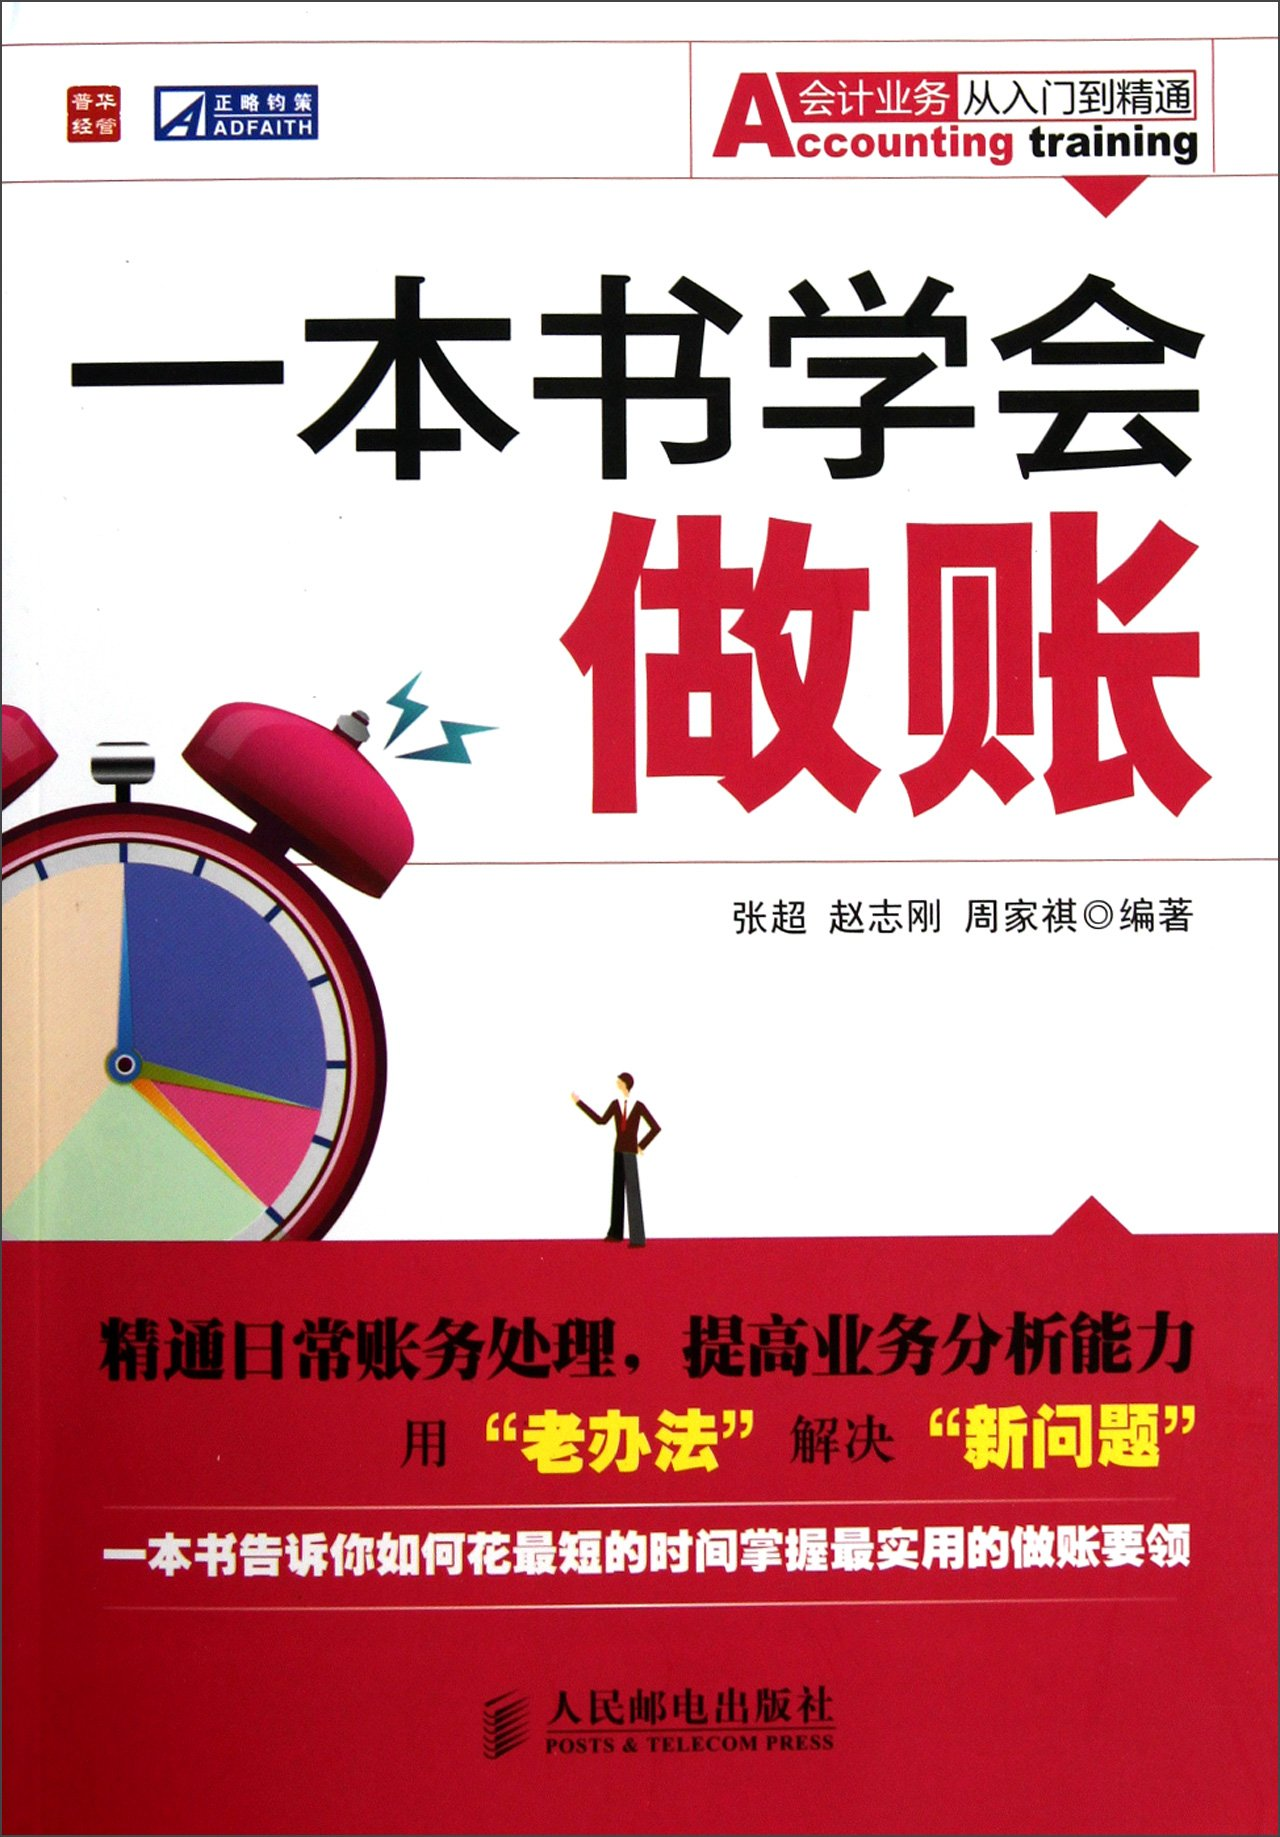 All in One Accounting Guide (Chinese Edition) PDF